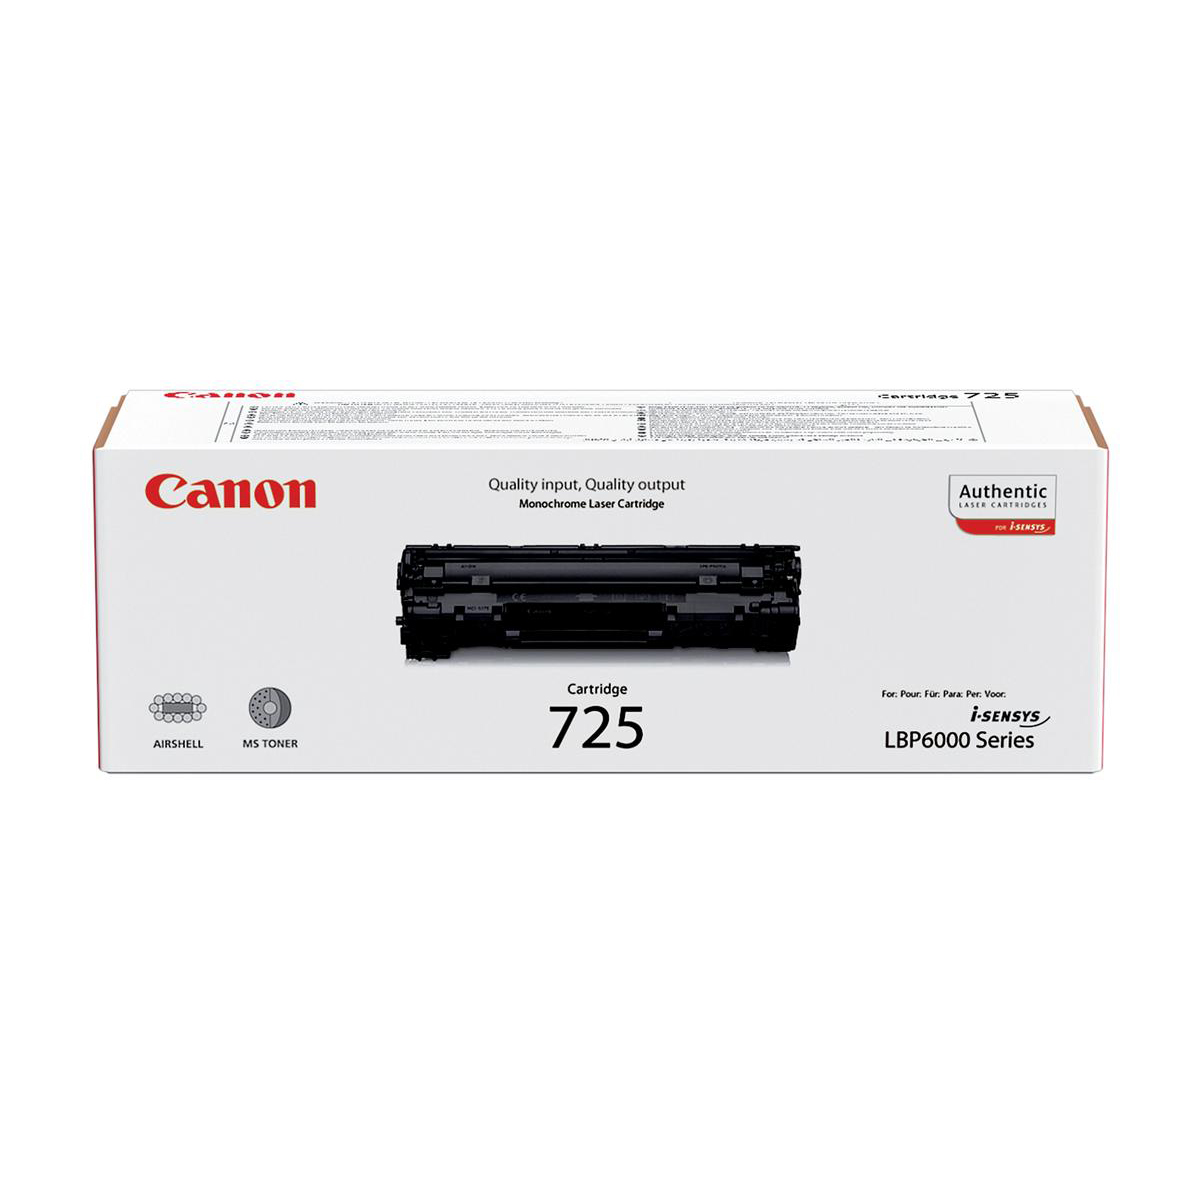 Canon 725 Laser Toner Cartridge Page Life 1600pp Black Ref 3484B002